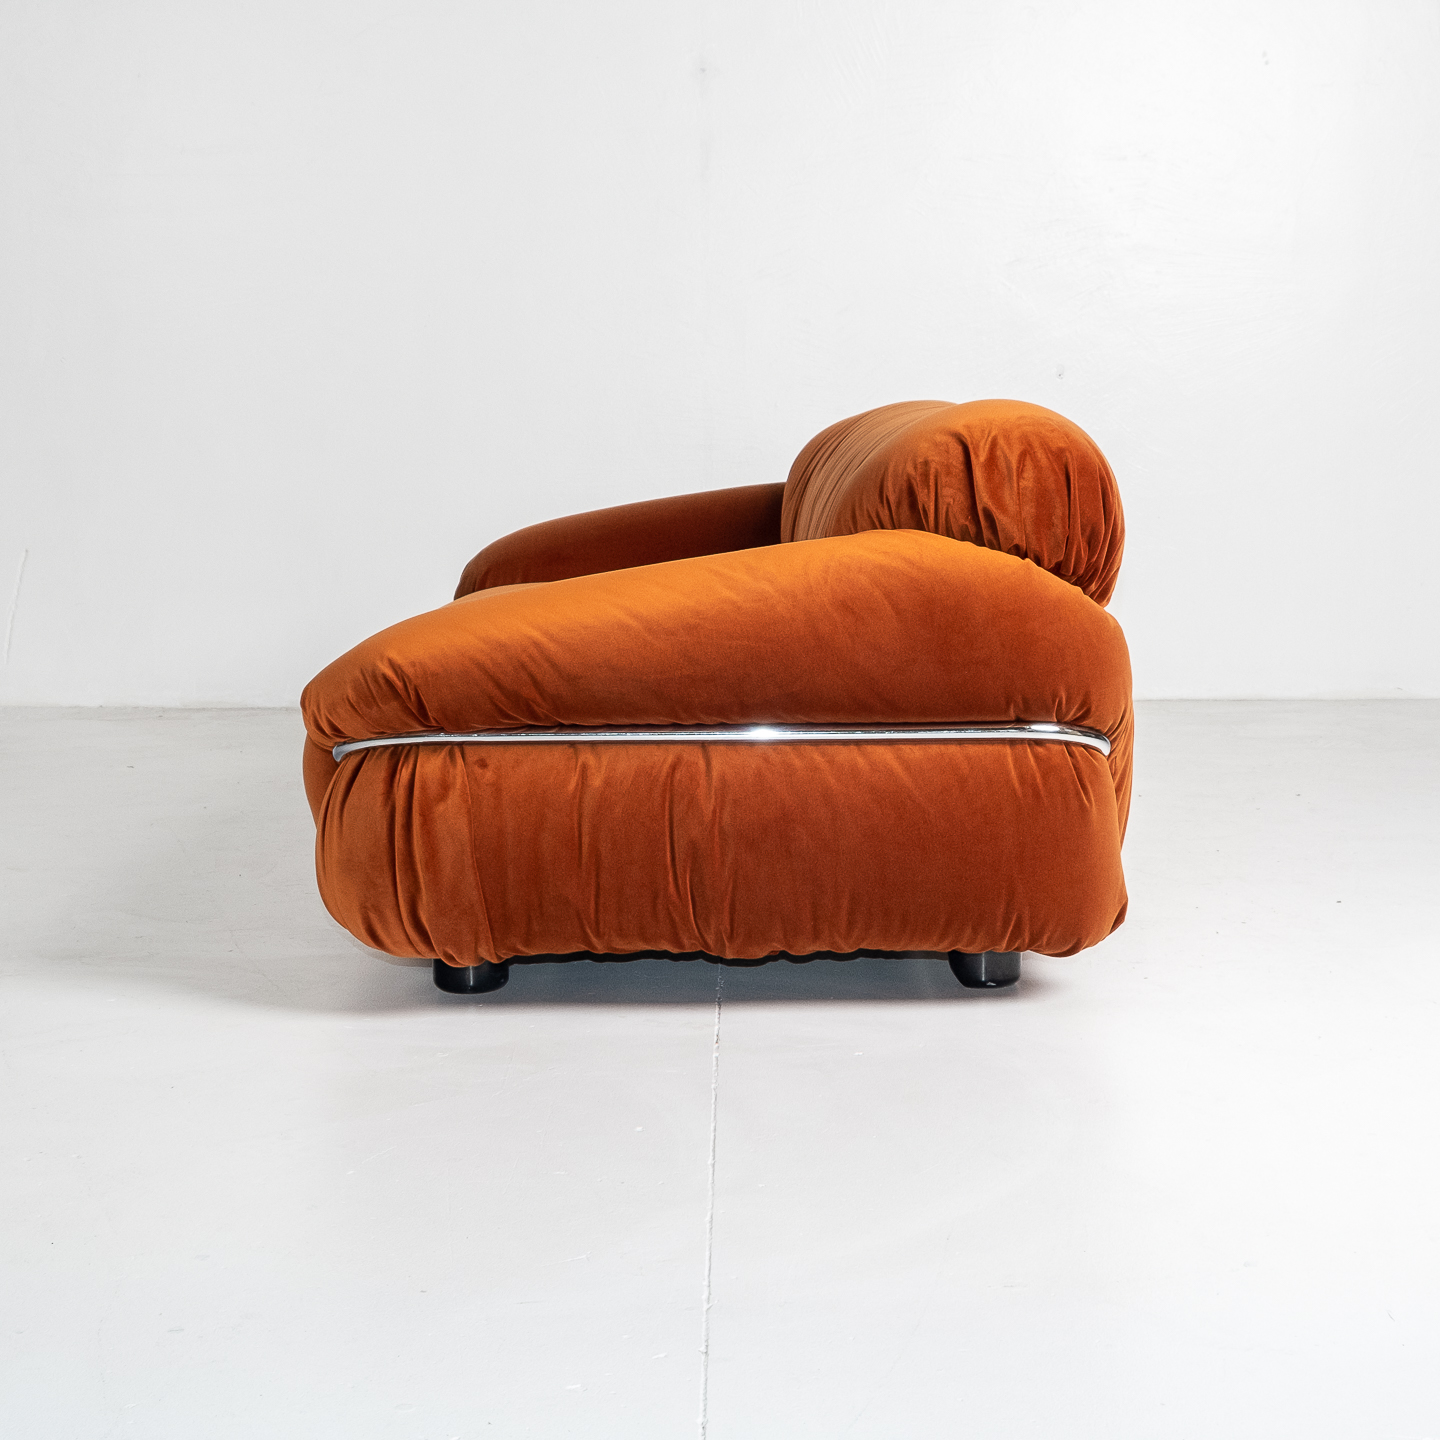 Model 595 Sesann Sofa By Gianfranco Frattini For Cassina, 1970s, Italy 196